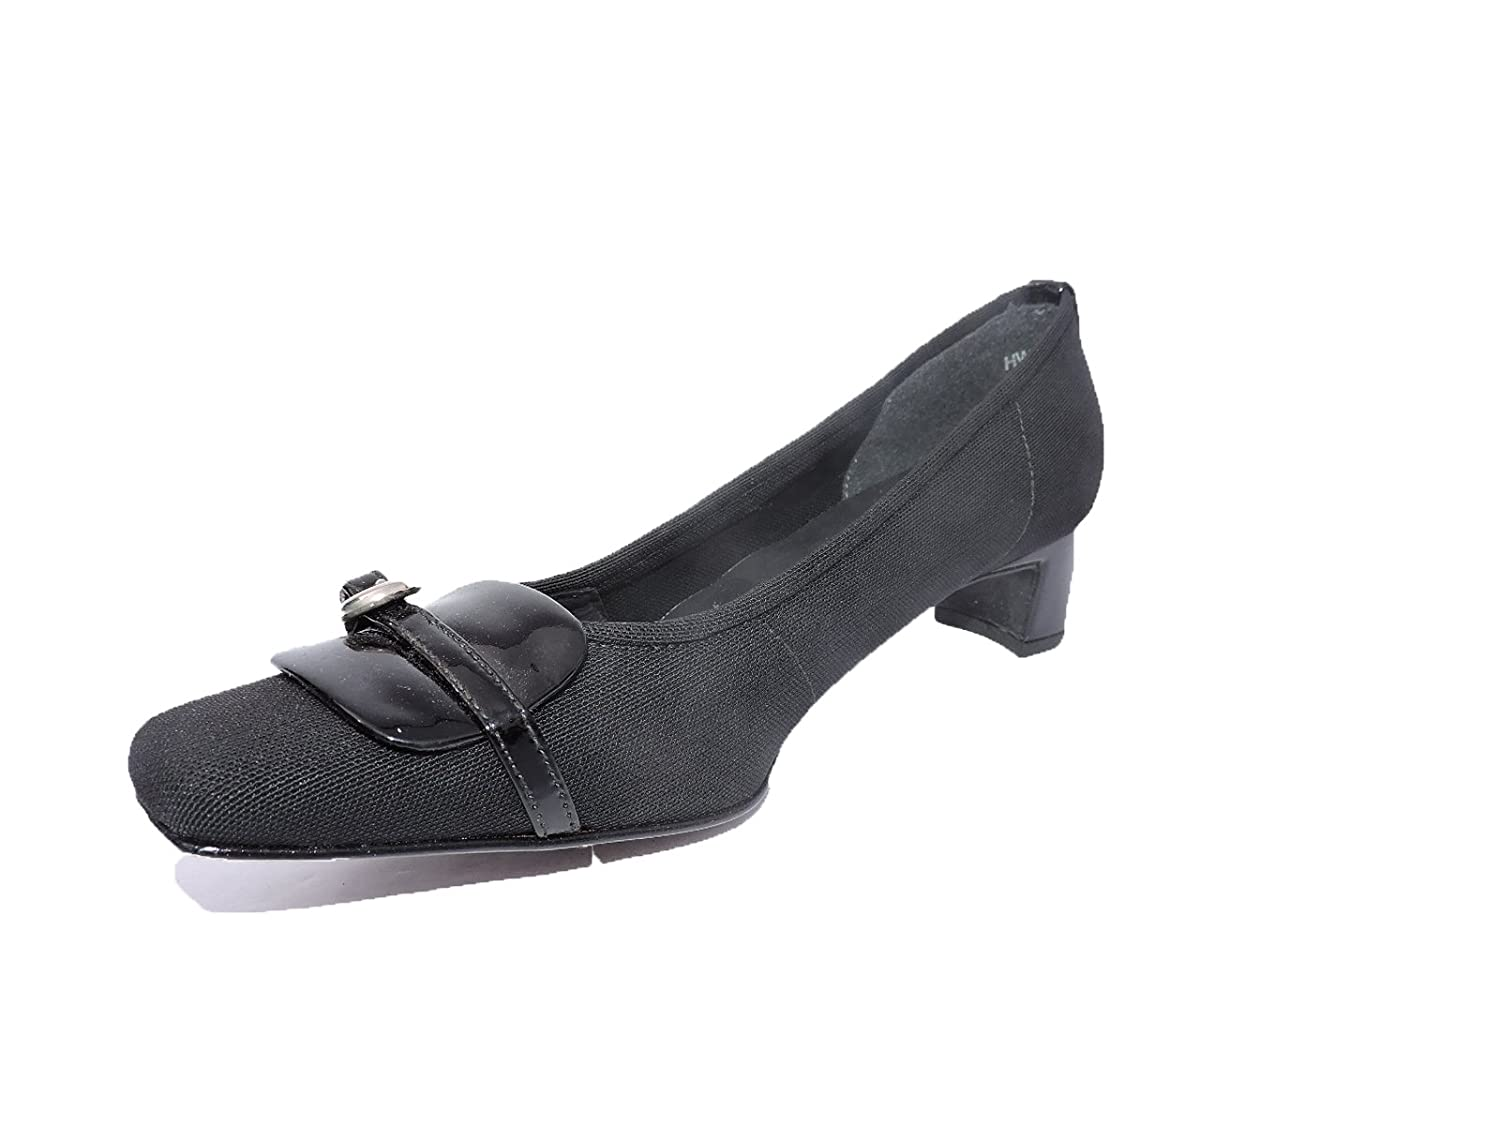 c44e635763d Amazon.com  Stuart Weitzman Womens Enclave Black Gauze Stretch Pumps 1.5